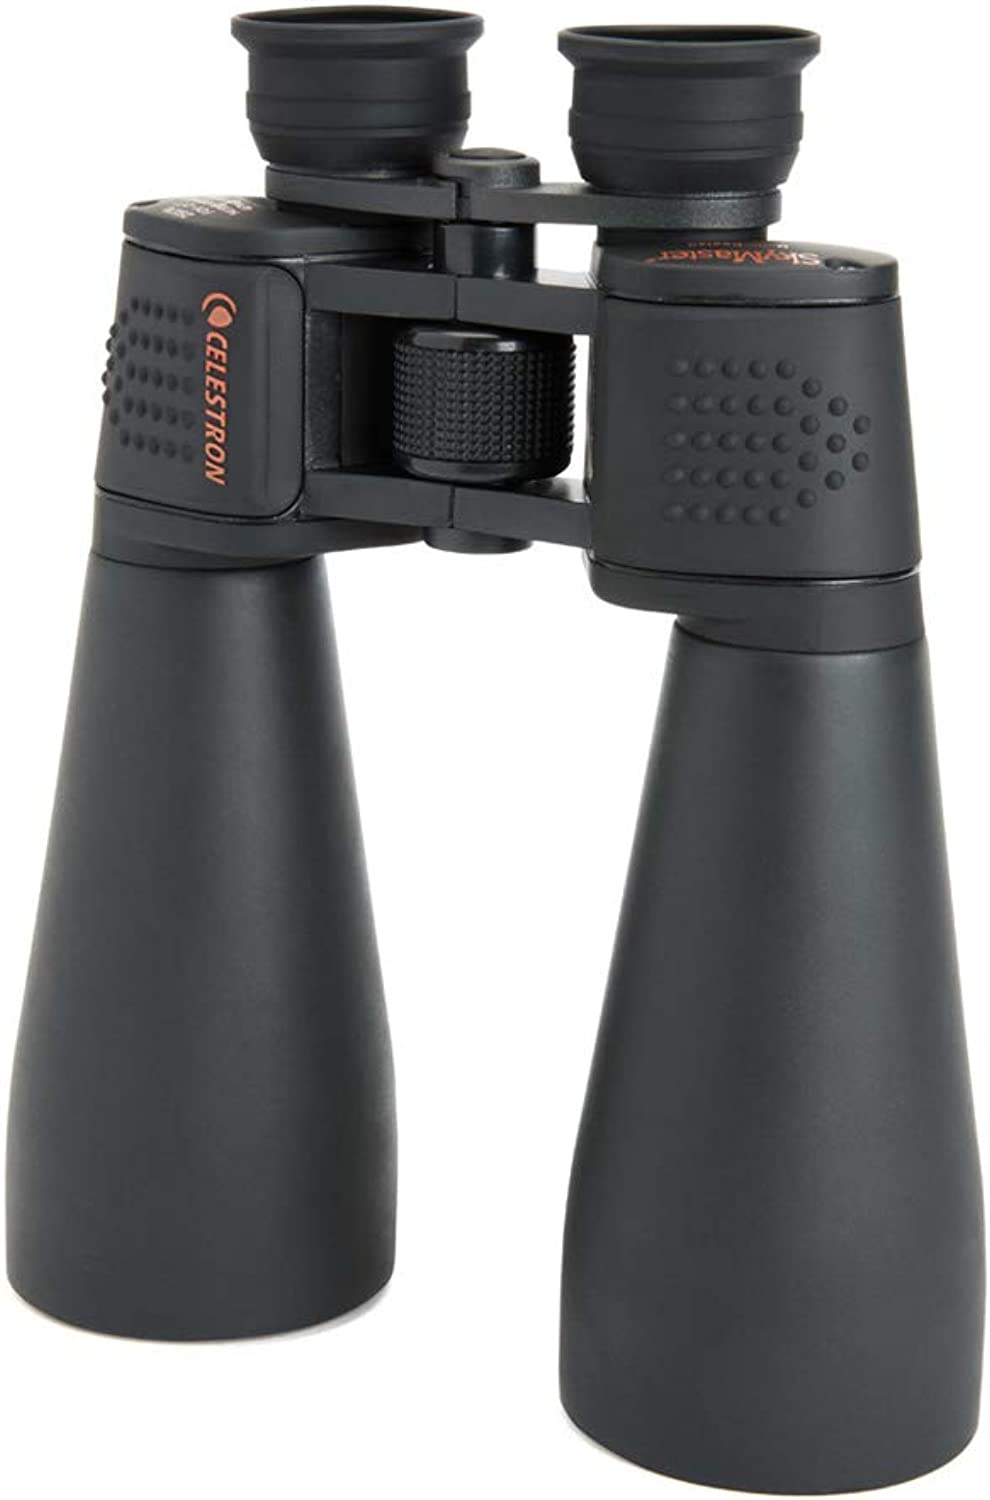 Binoculars 25x70 Powerful Telescope Waterproof Hd Vision High Times Binocular Range for Hunting Stargazing Portable Telescope